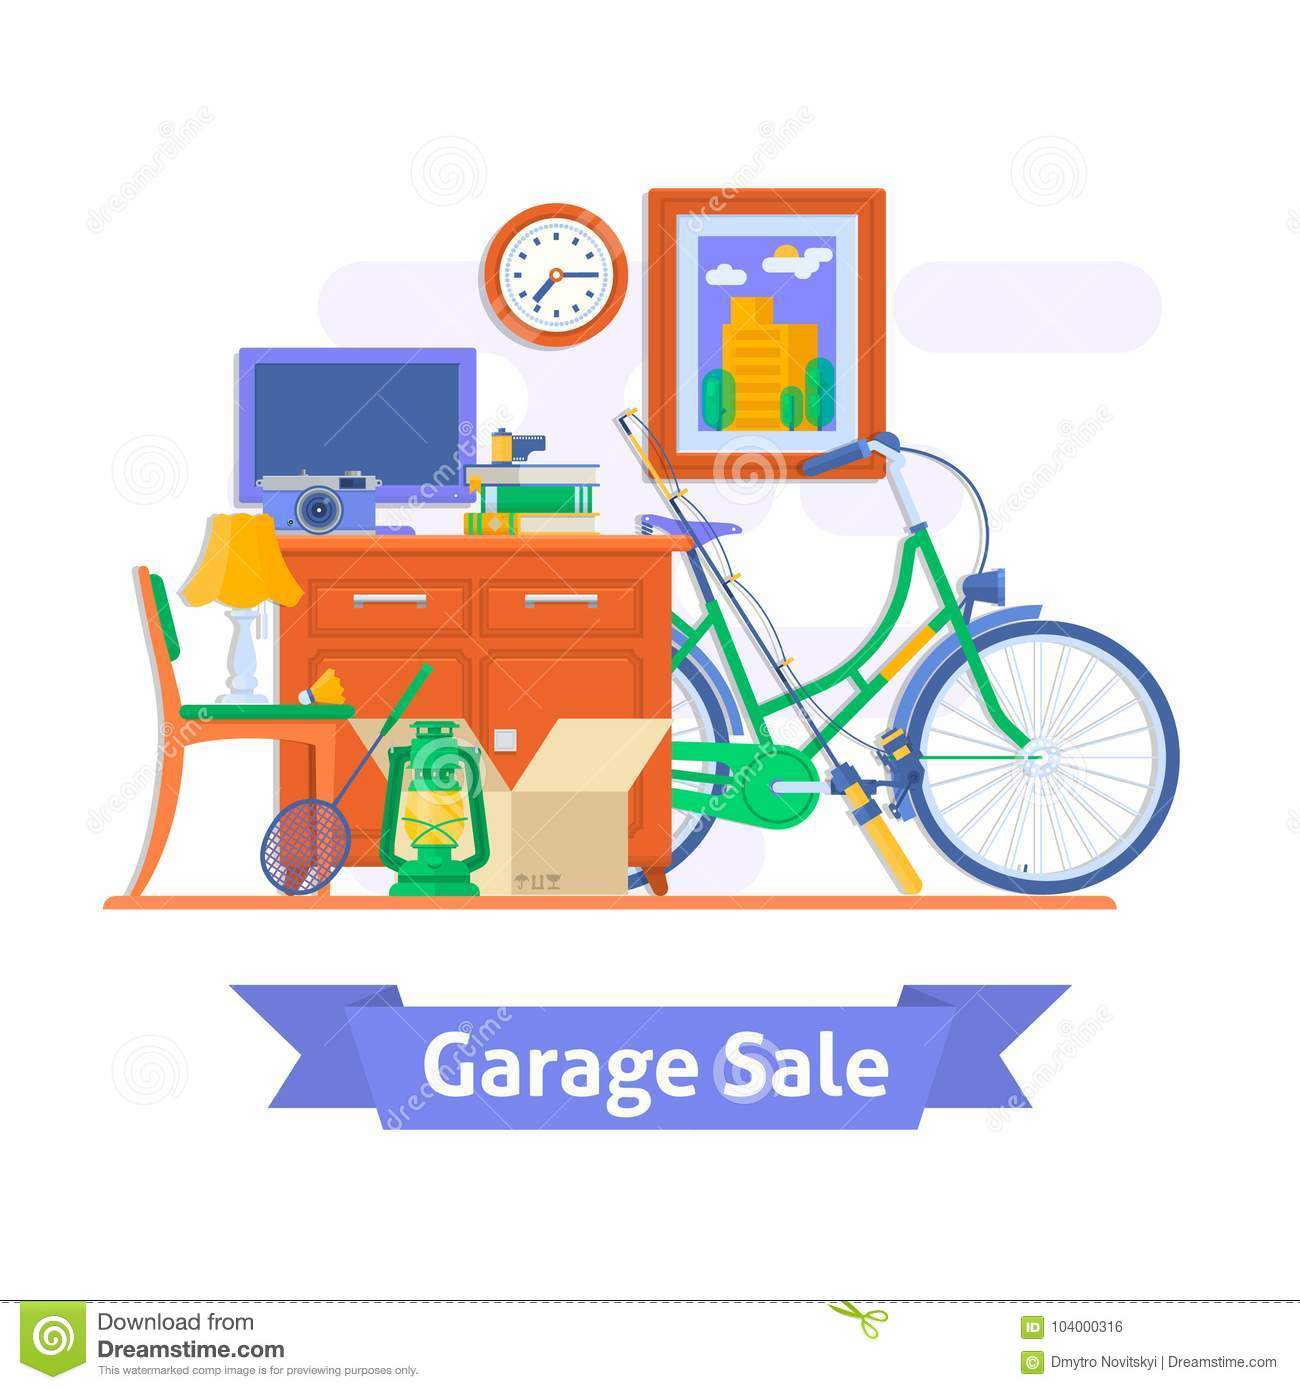 Garage Sale, Household Used Goods Flat Style Vector